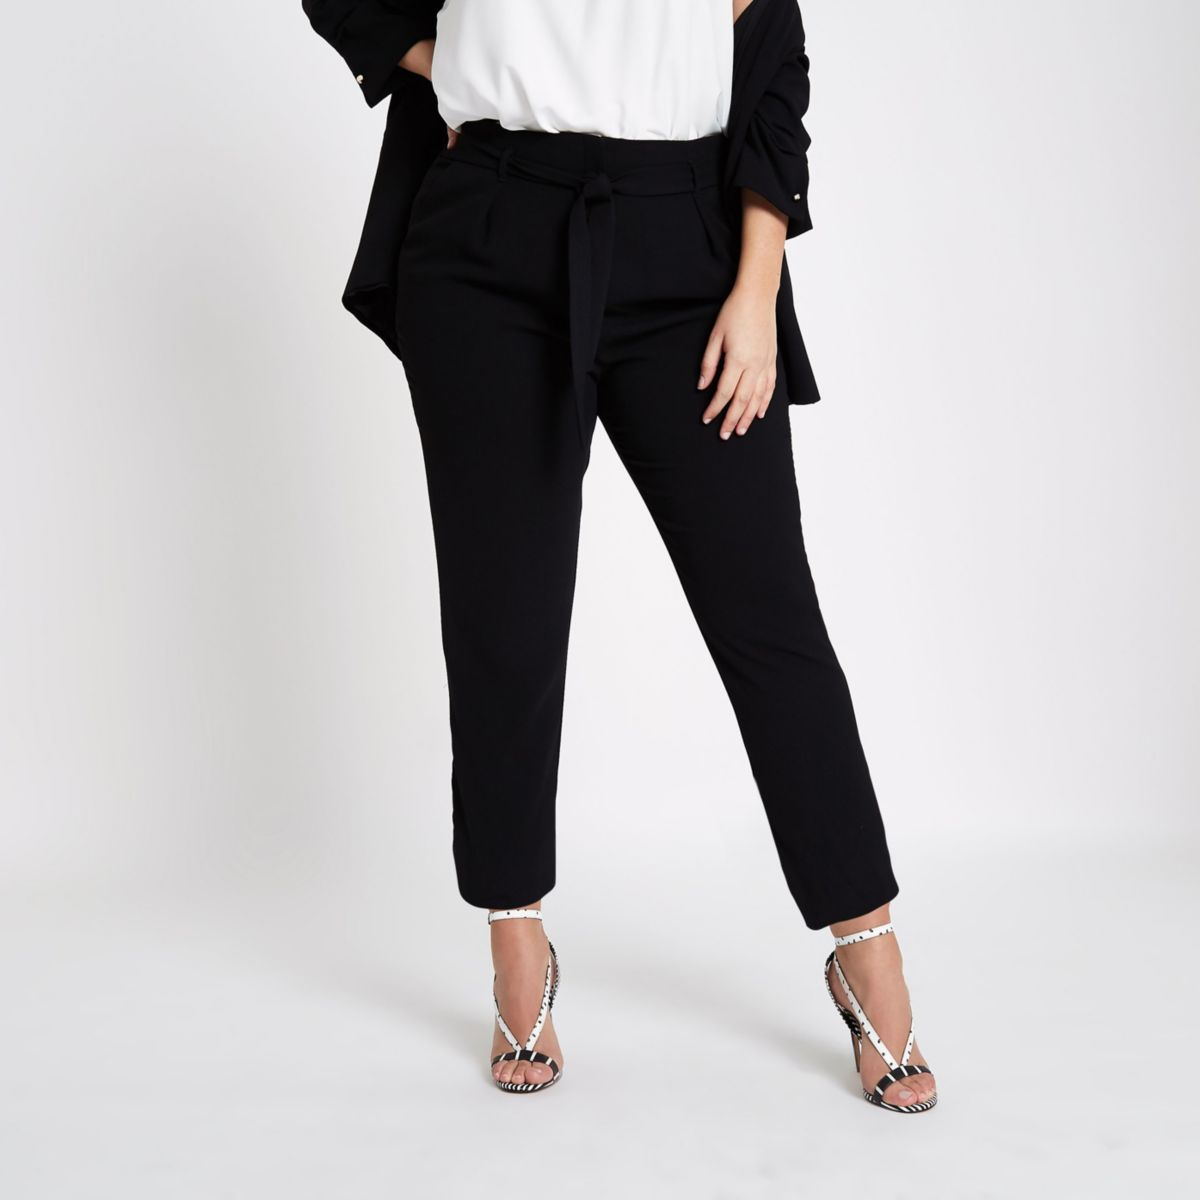 Plus black soft tapered pants